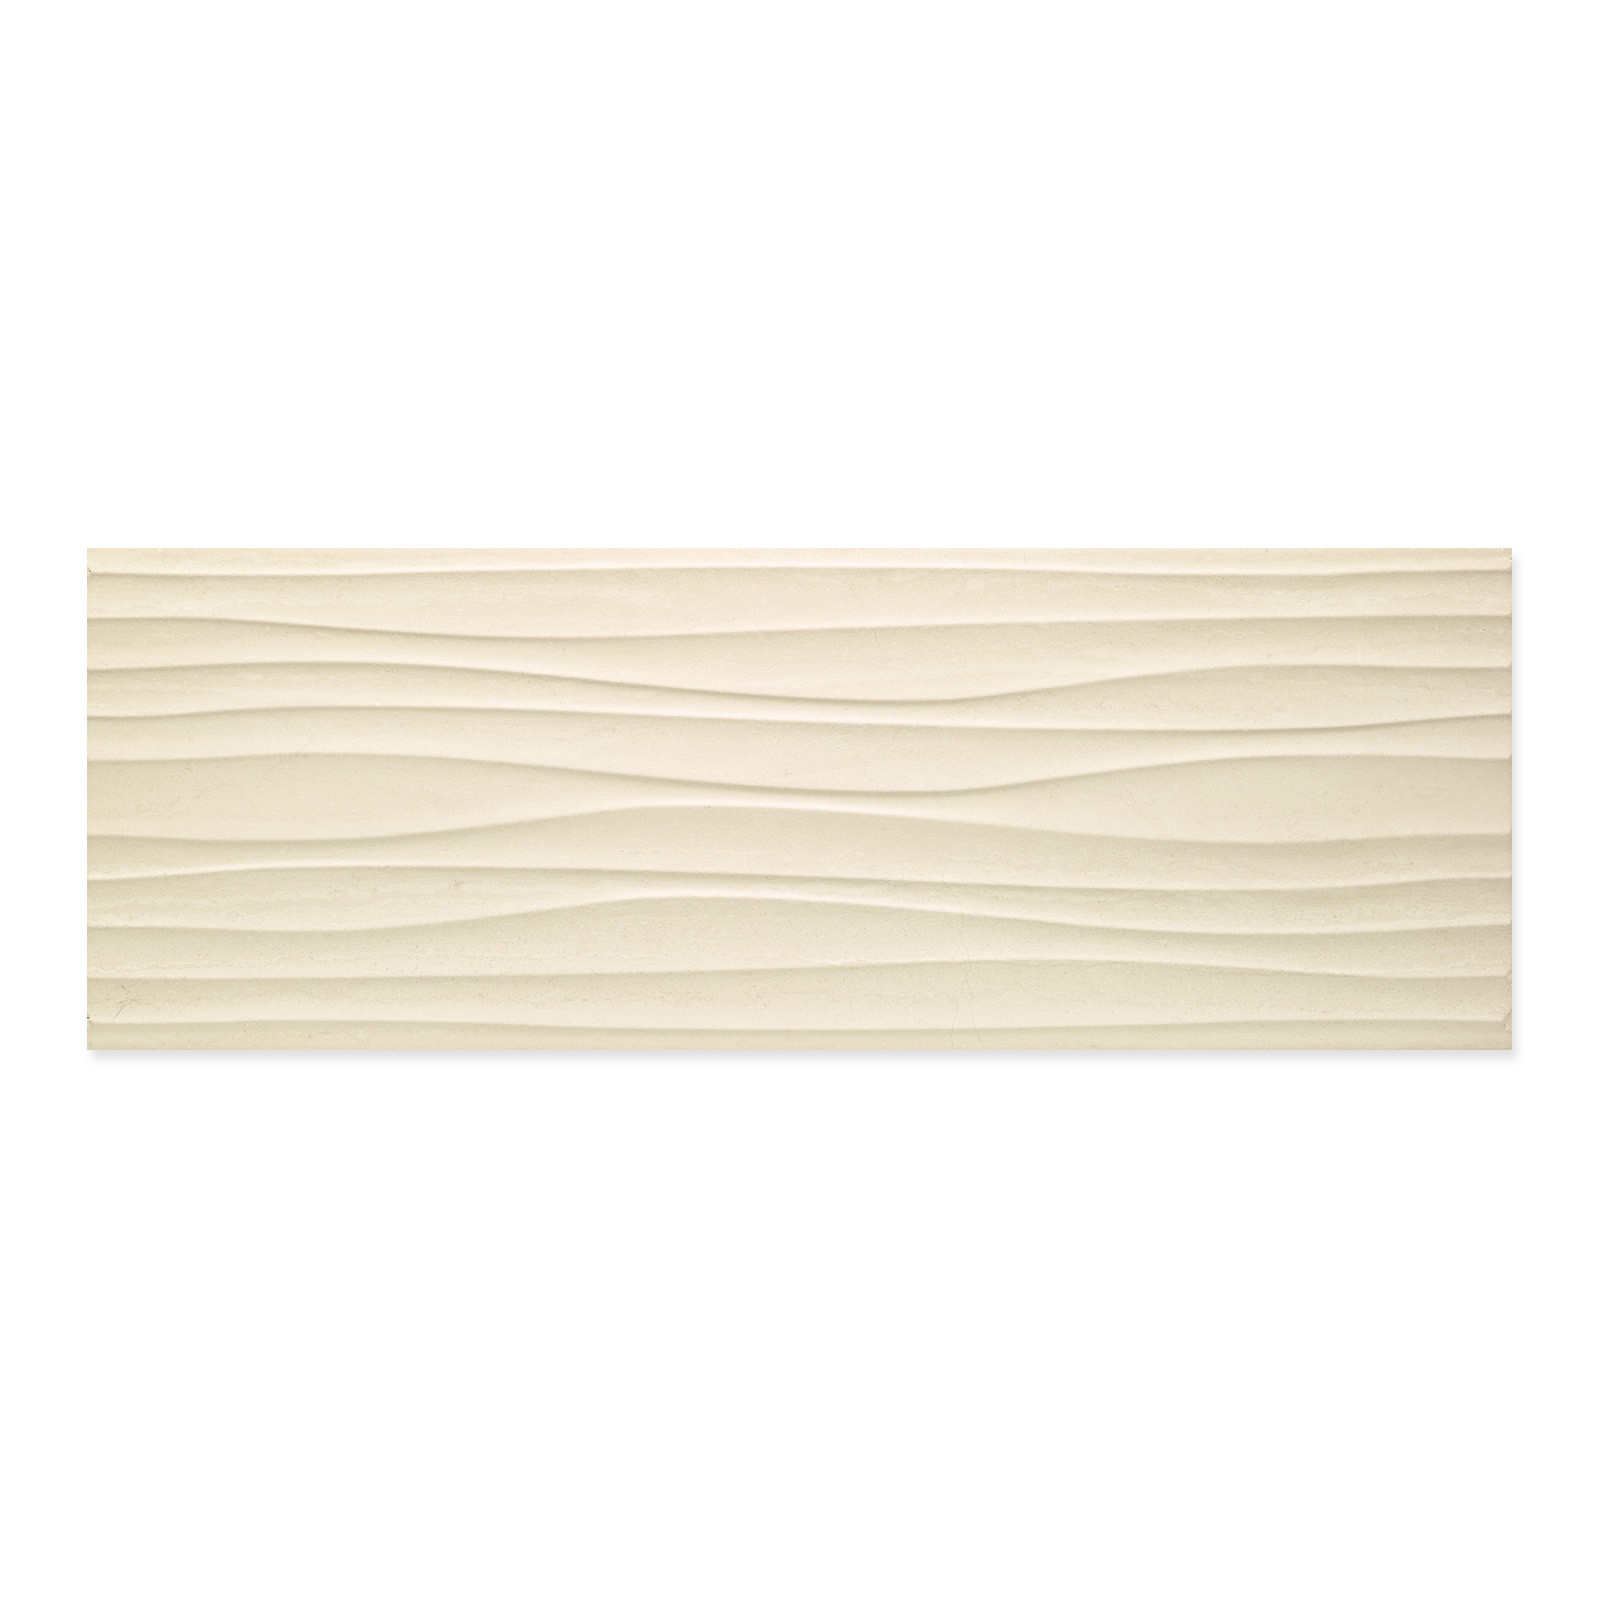 Magic beige wave d cor wall tile - Decorative wall tiles for bathroom ...